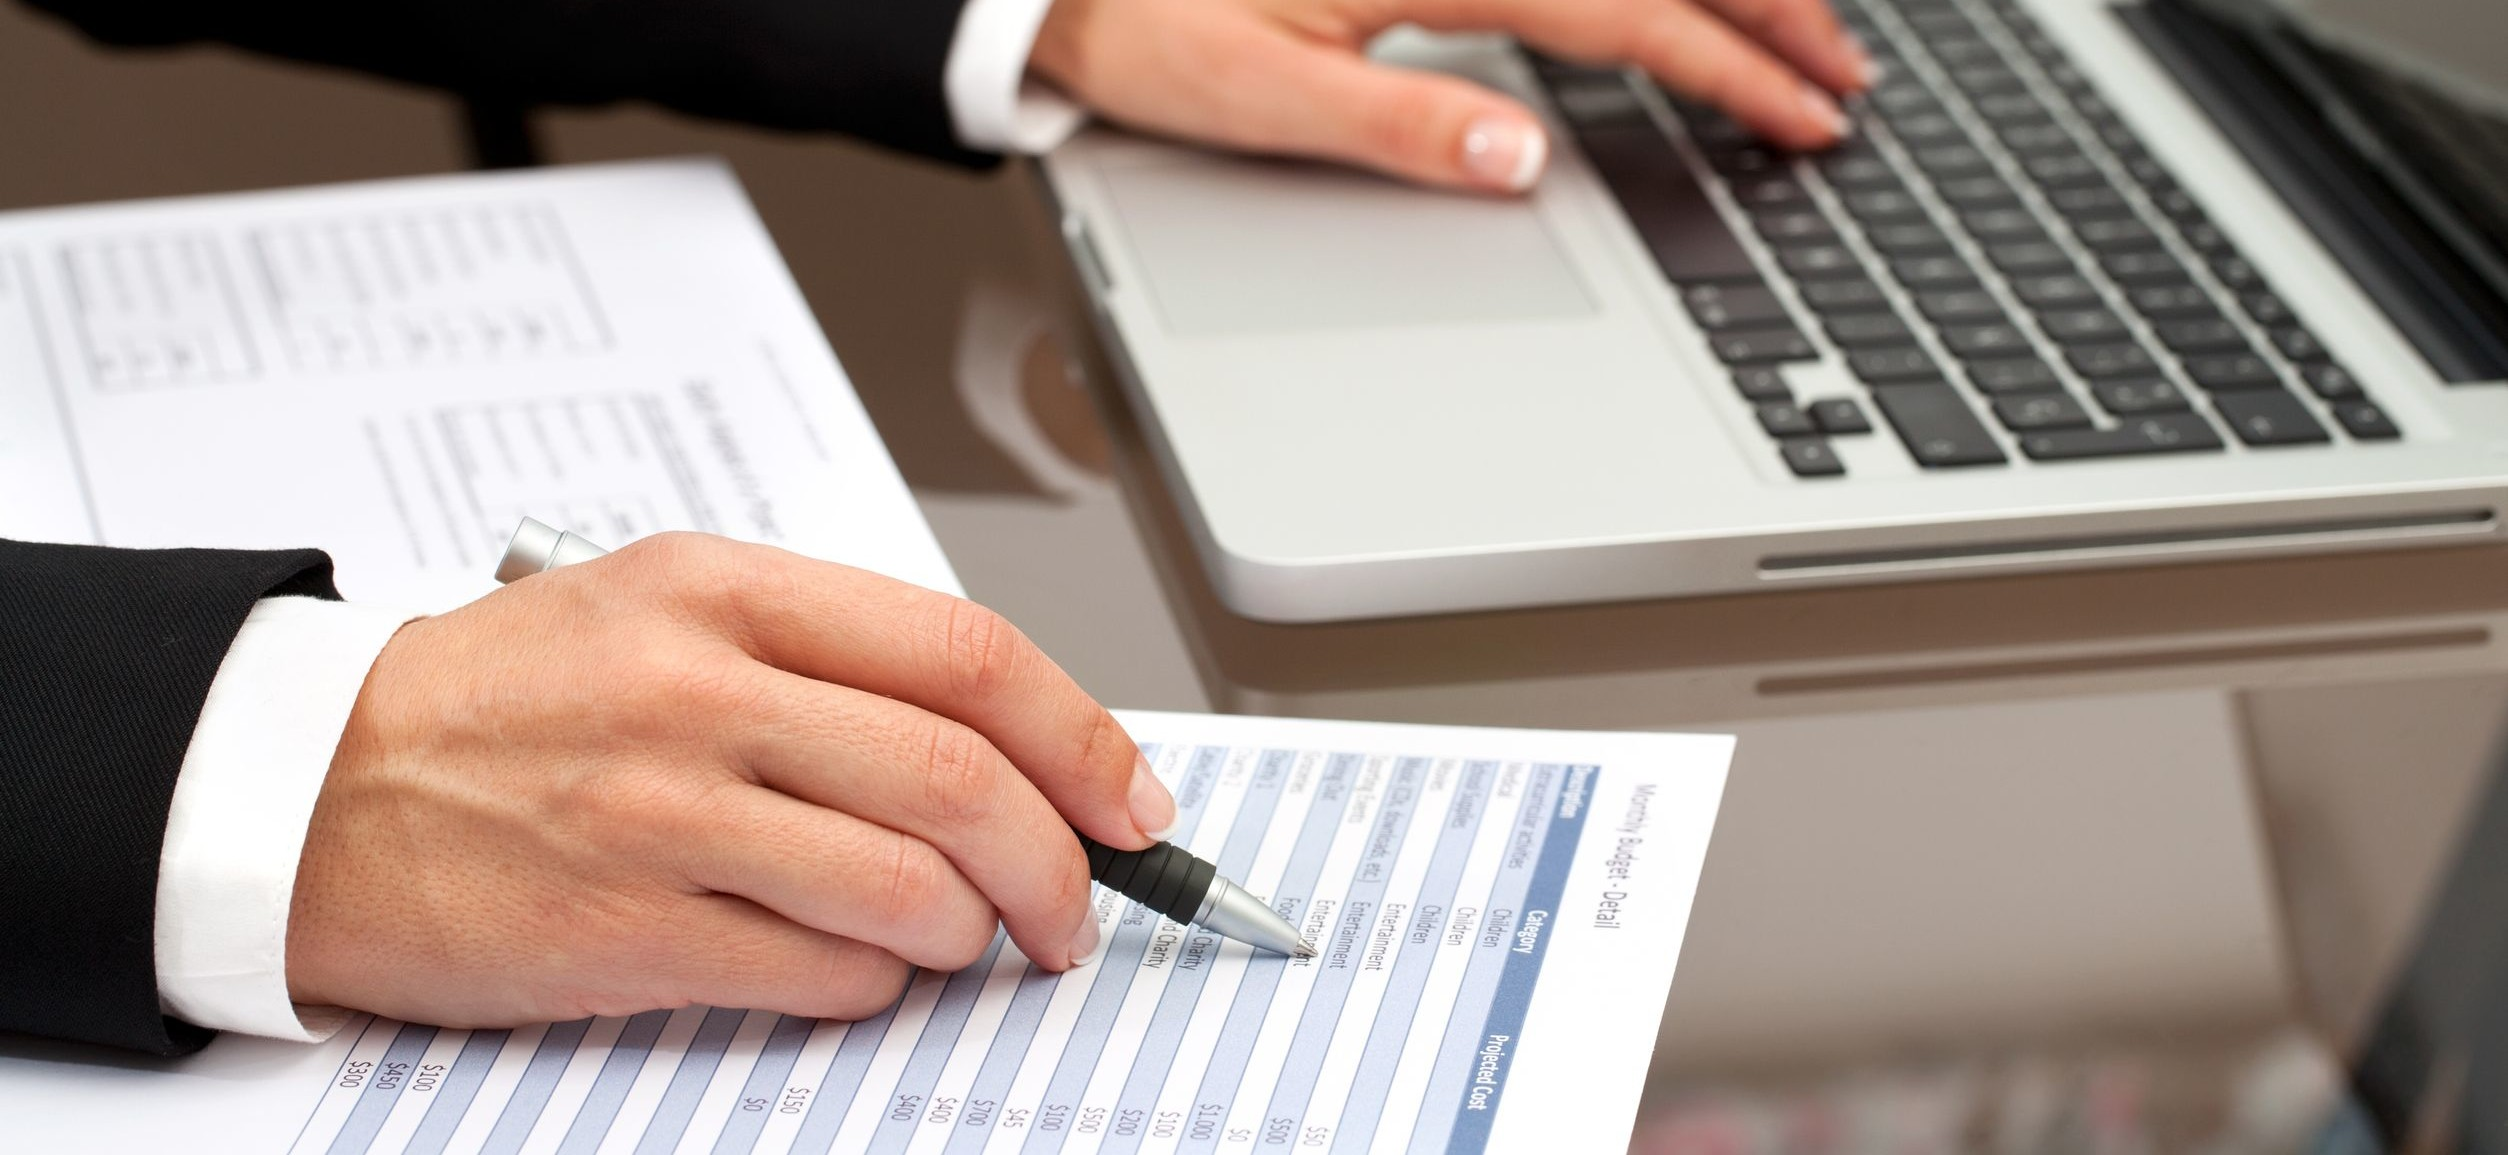 cropped-business_accounting__hd_wallpaper-1